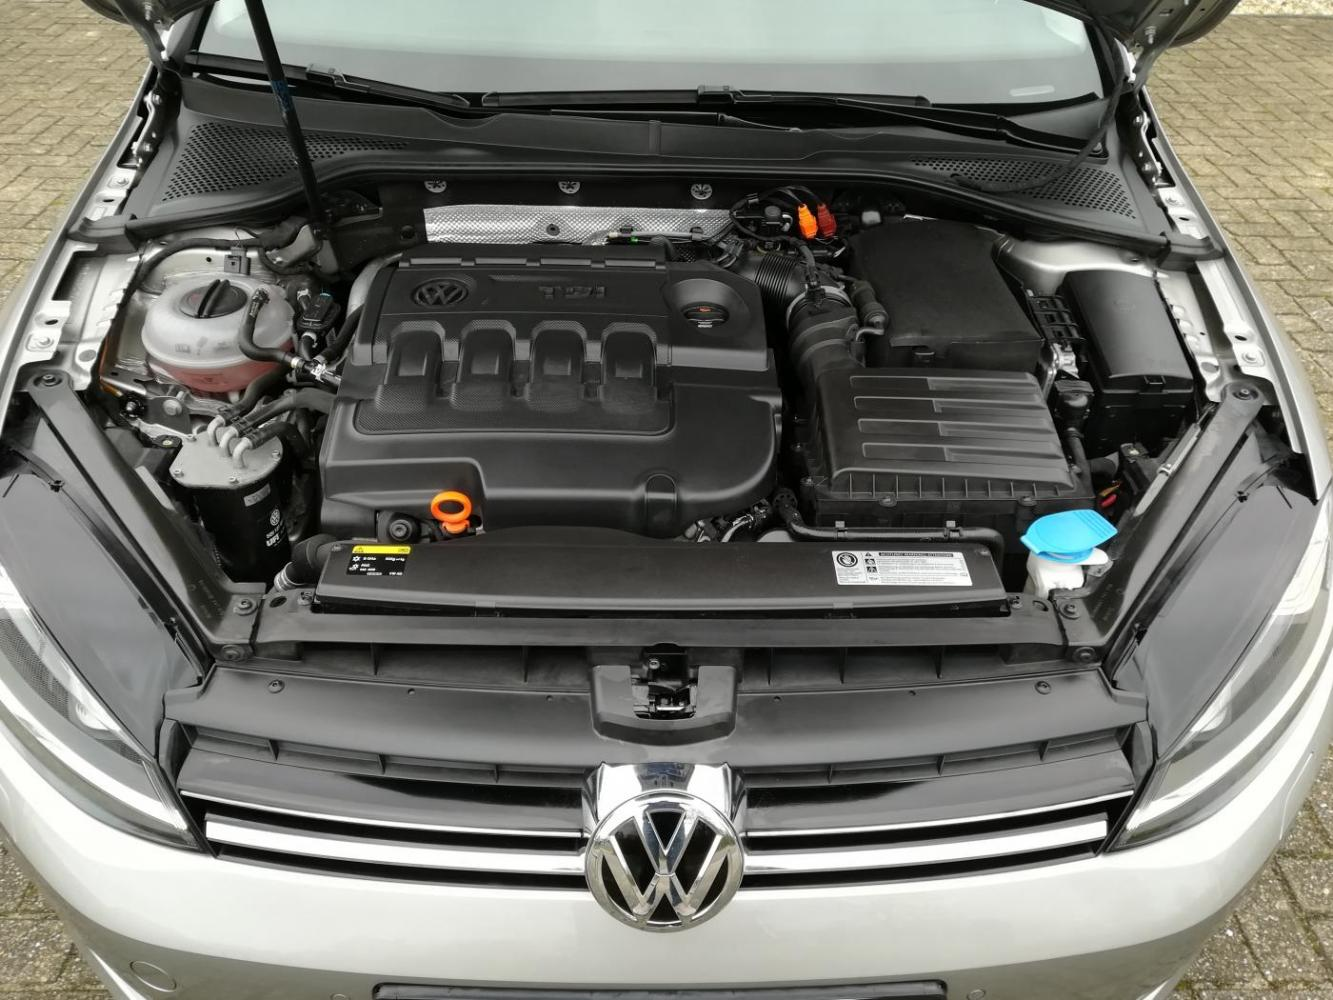 Volkswagen Golf 2.0 TDI Highline DSG